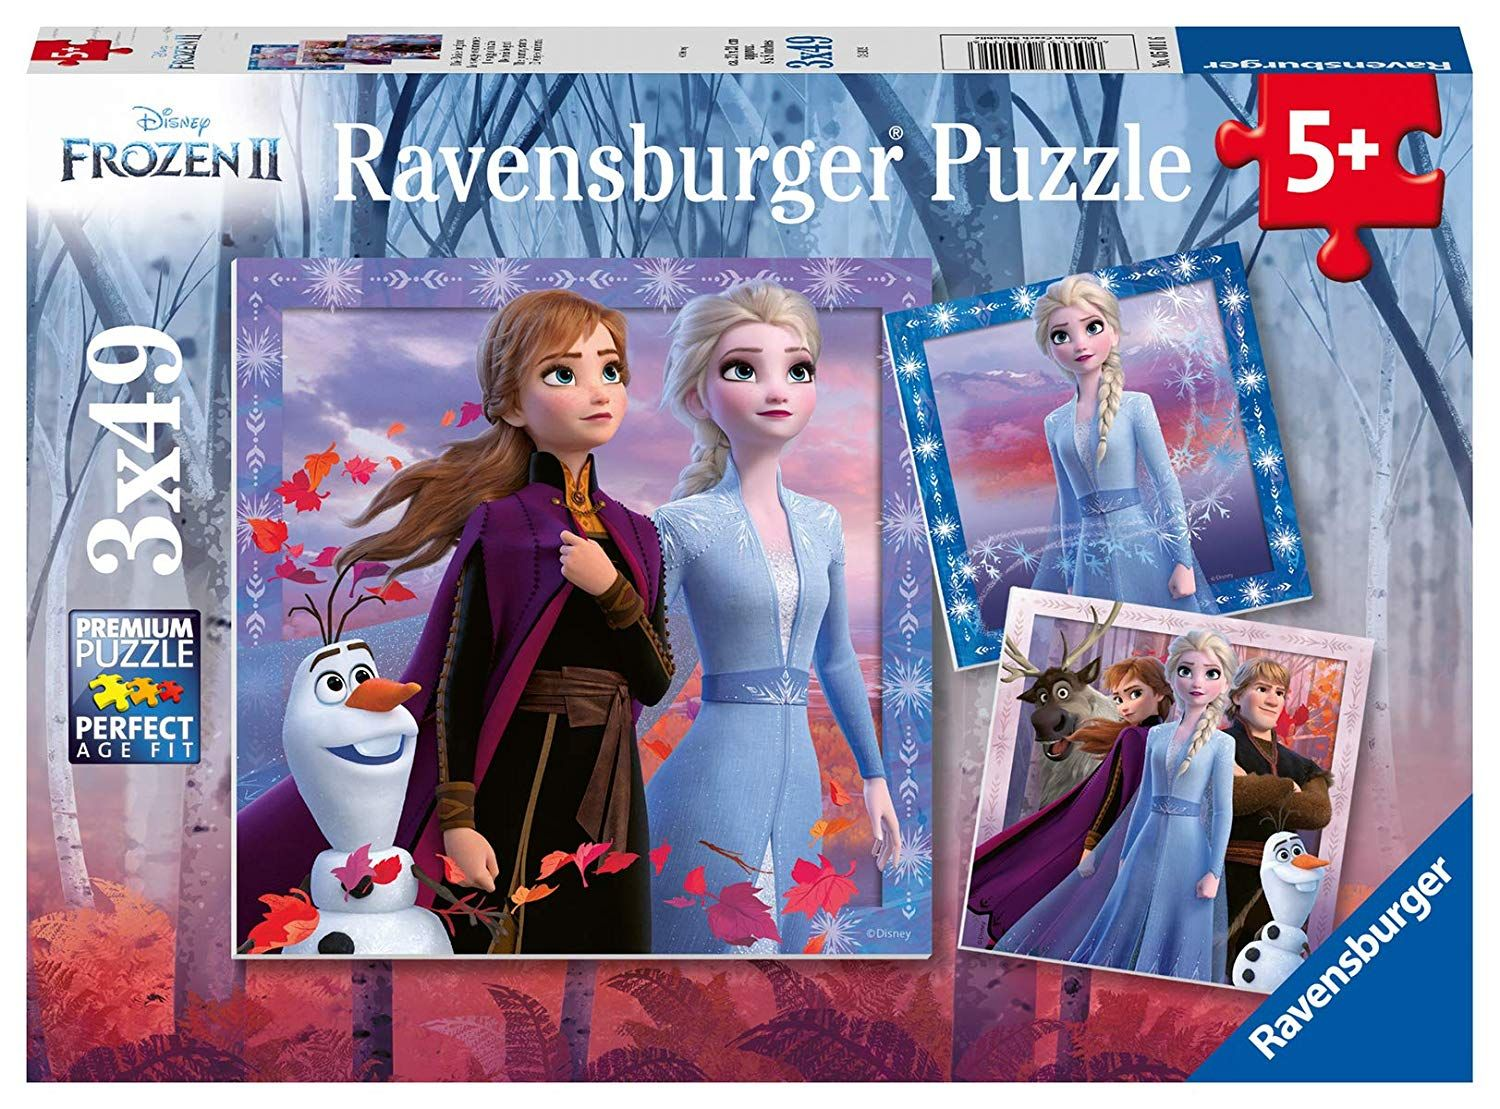 Ravensburger - Frozen 2 The Journey Starts Jigsaw puzzle 3x49 pieces 5 +